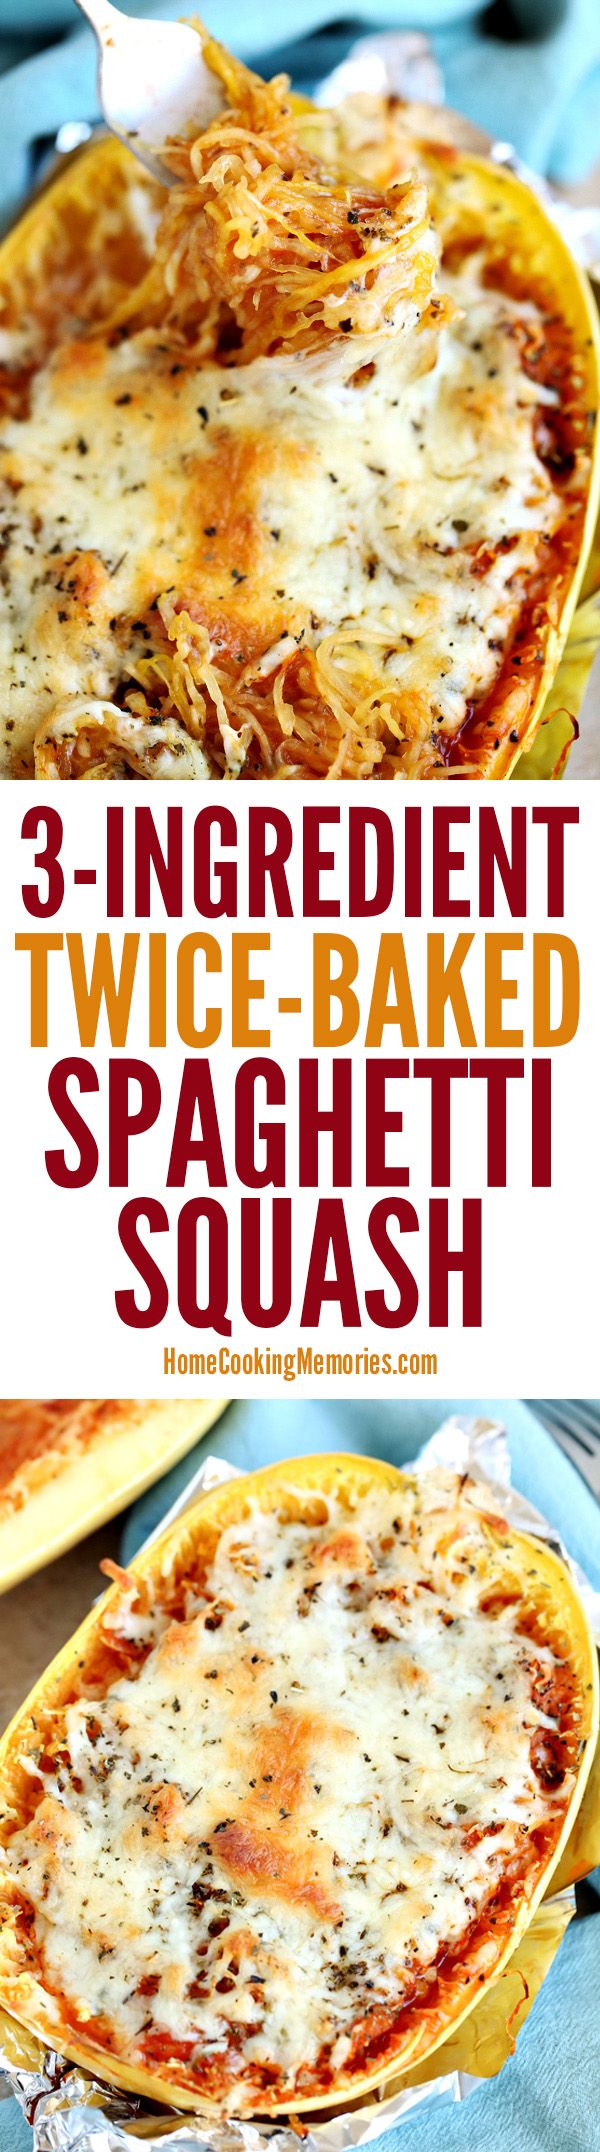 This Twice-Baked Spaghetti Squash recipe is an easy dinner idea that only needs 3-ingredients: spaghetti squash, mozzarella